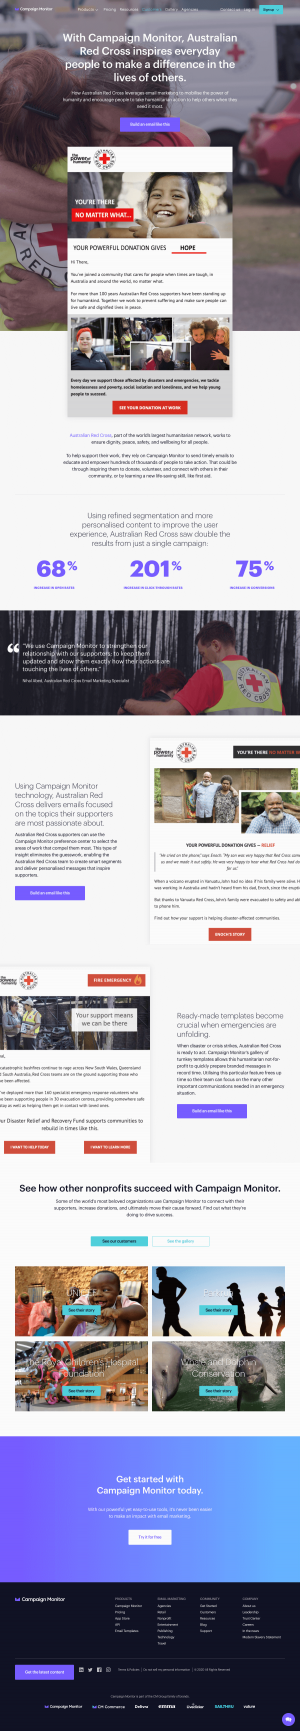 Campaign Monitor – Customers page 2